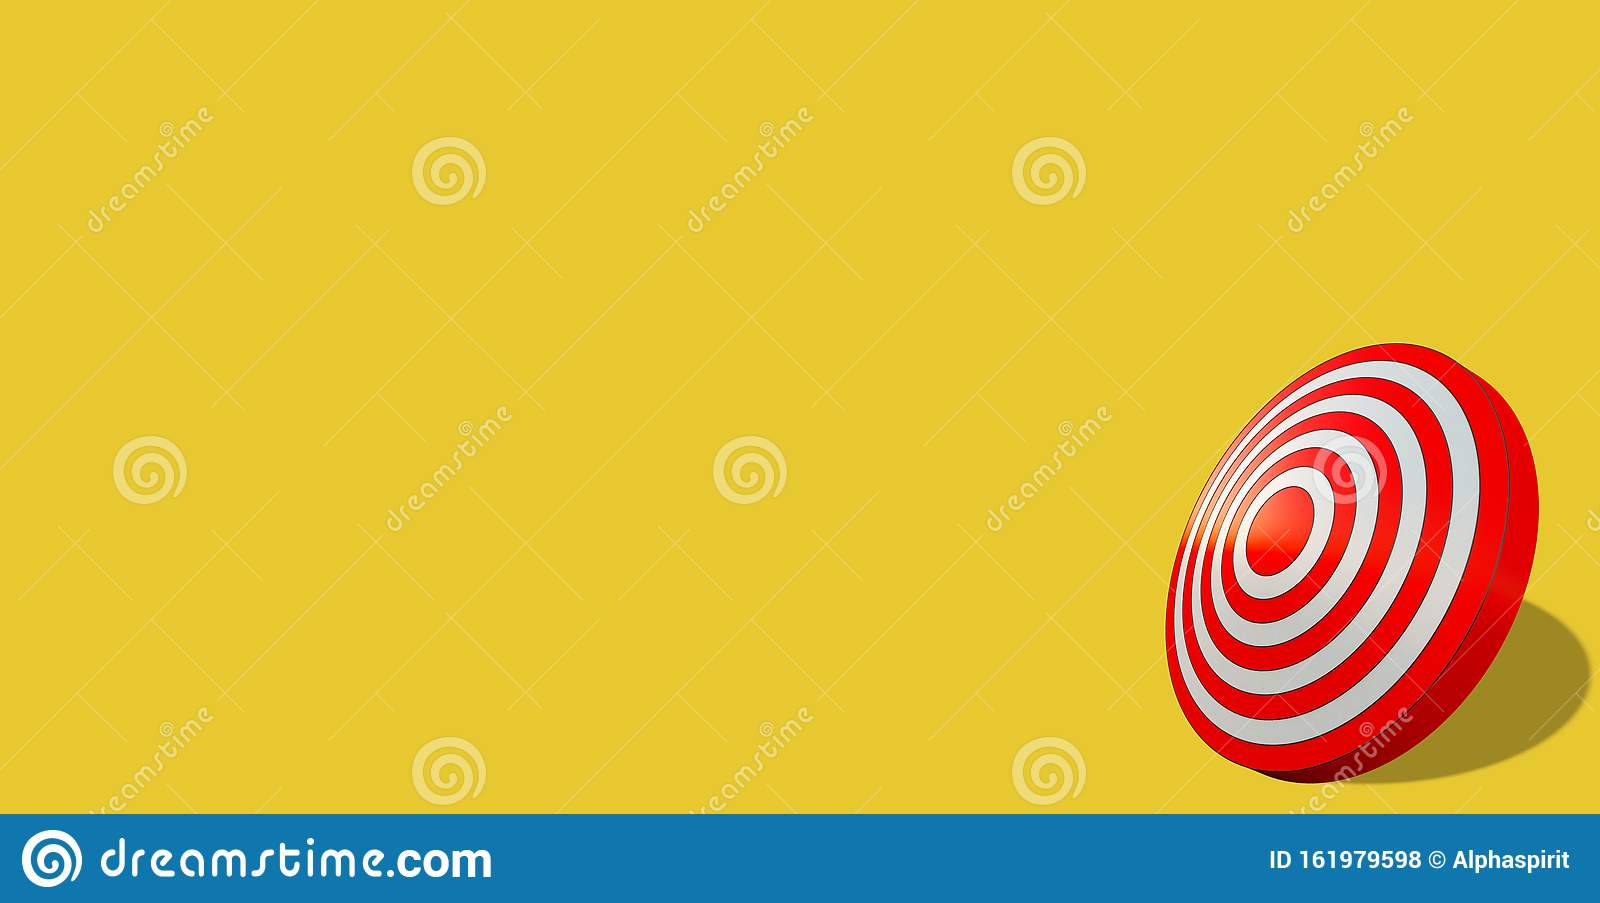 Business target achievement concept. Red target isolated on yellow background